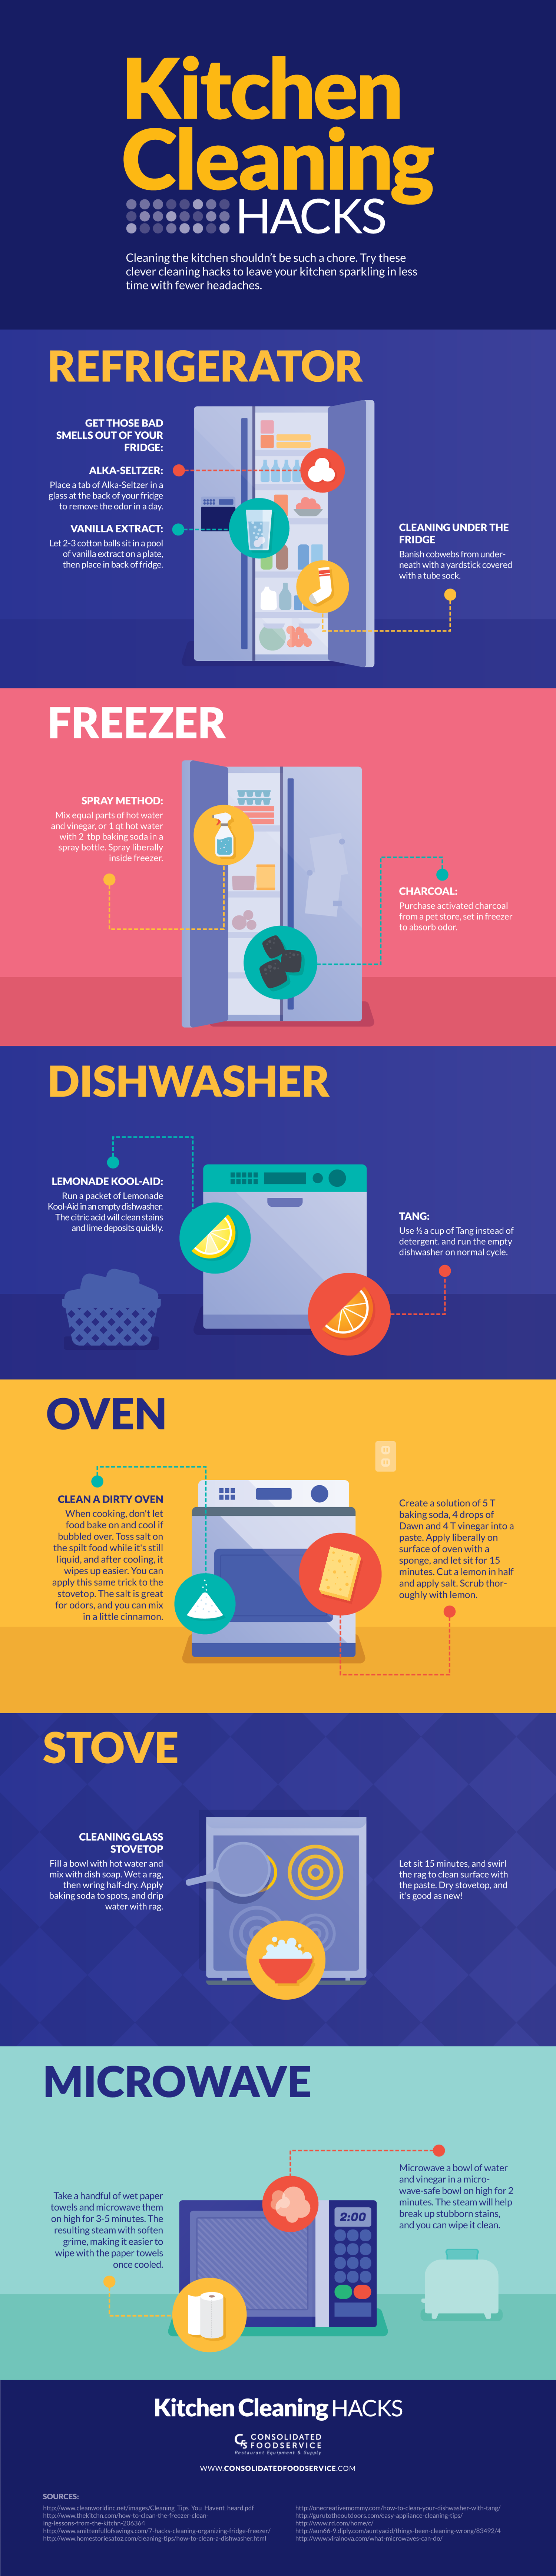 house cleaning chart price chart house cleaning miscellaneous cleaning all the appliances in your kitchen might not be your definition of fun but